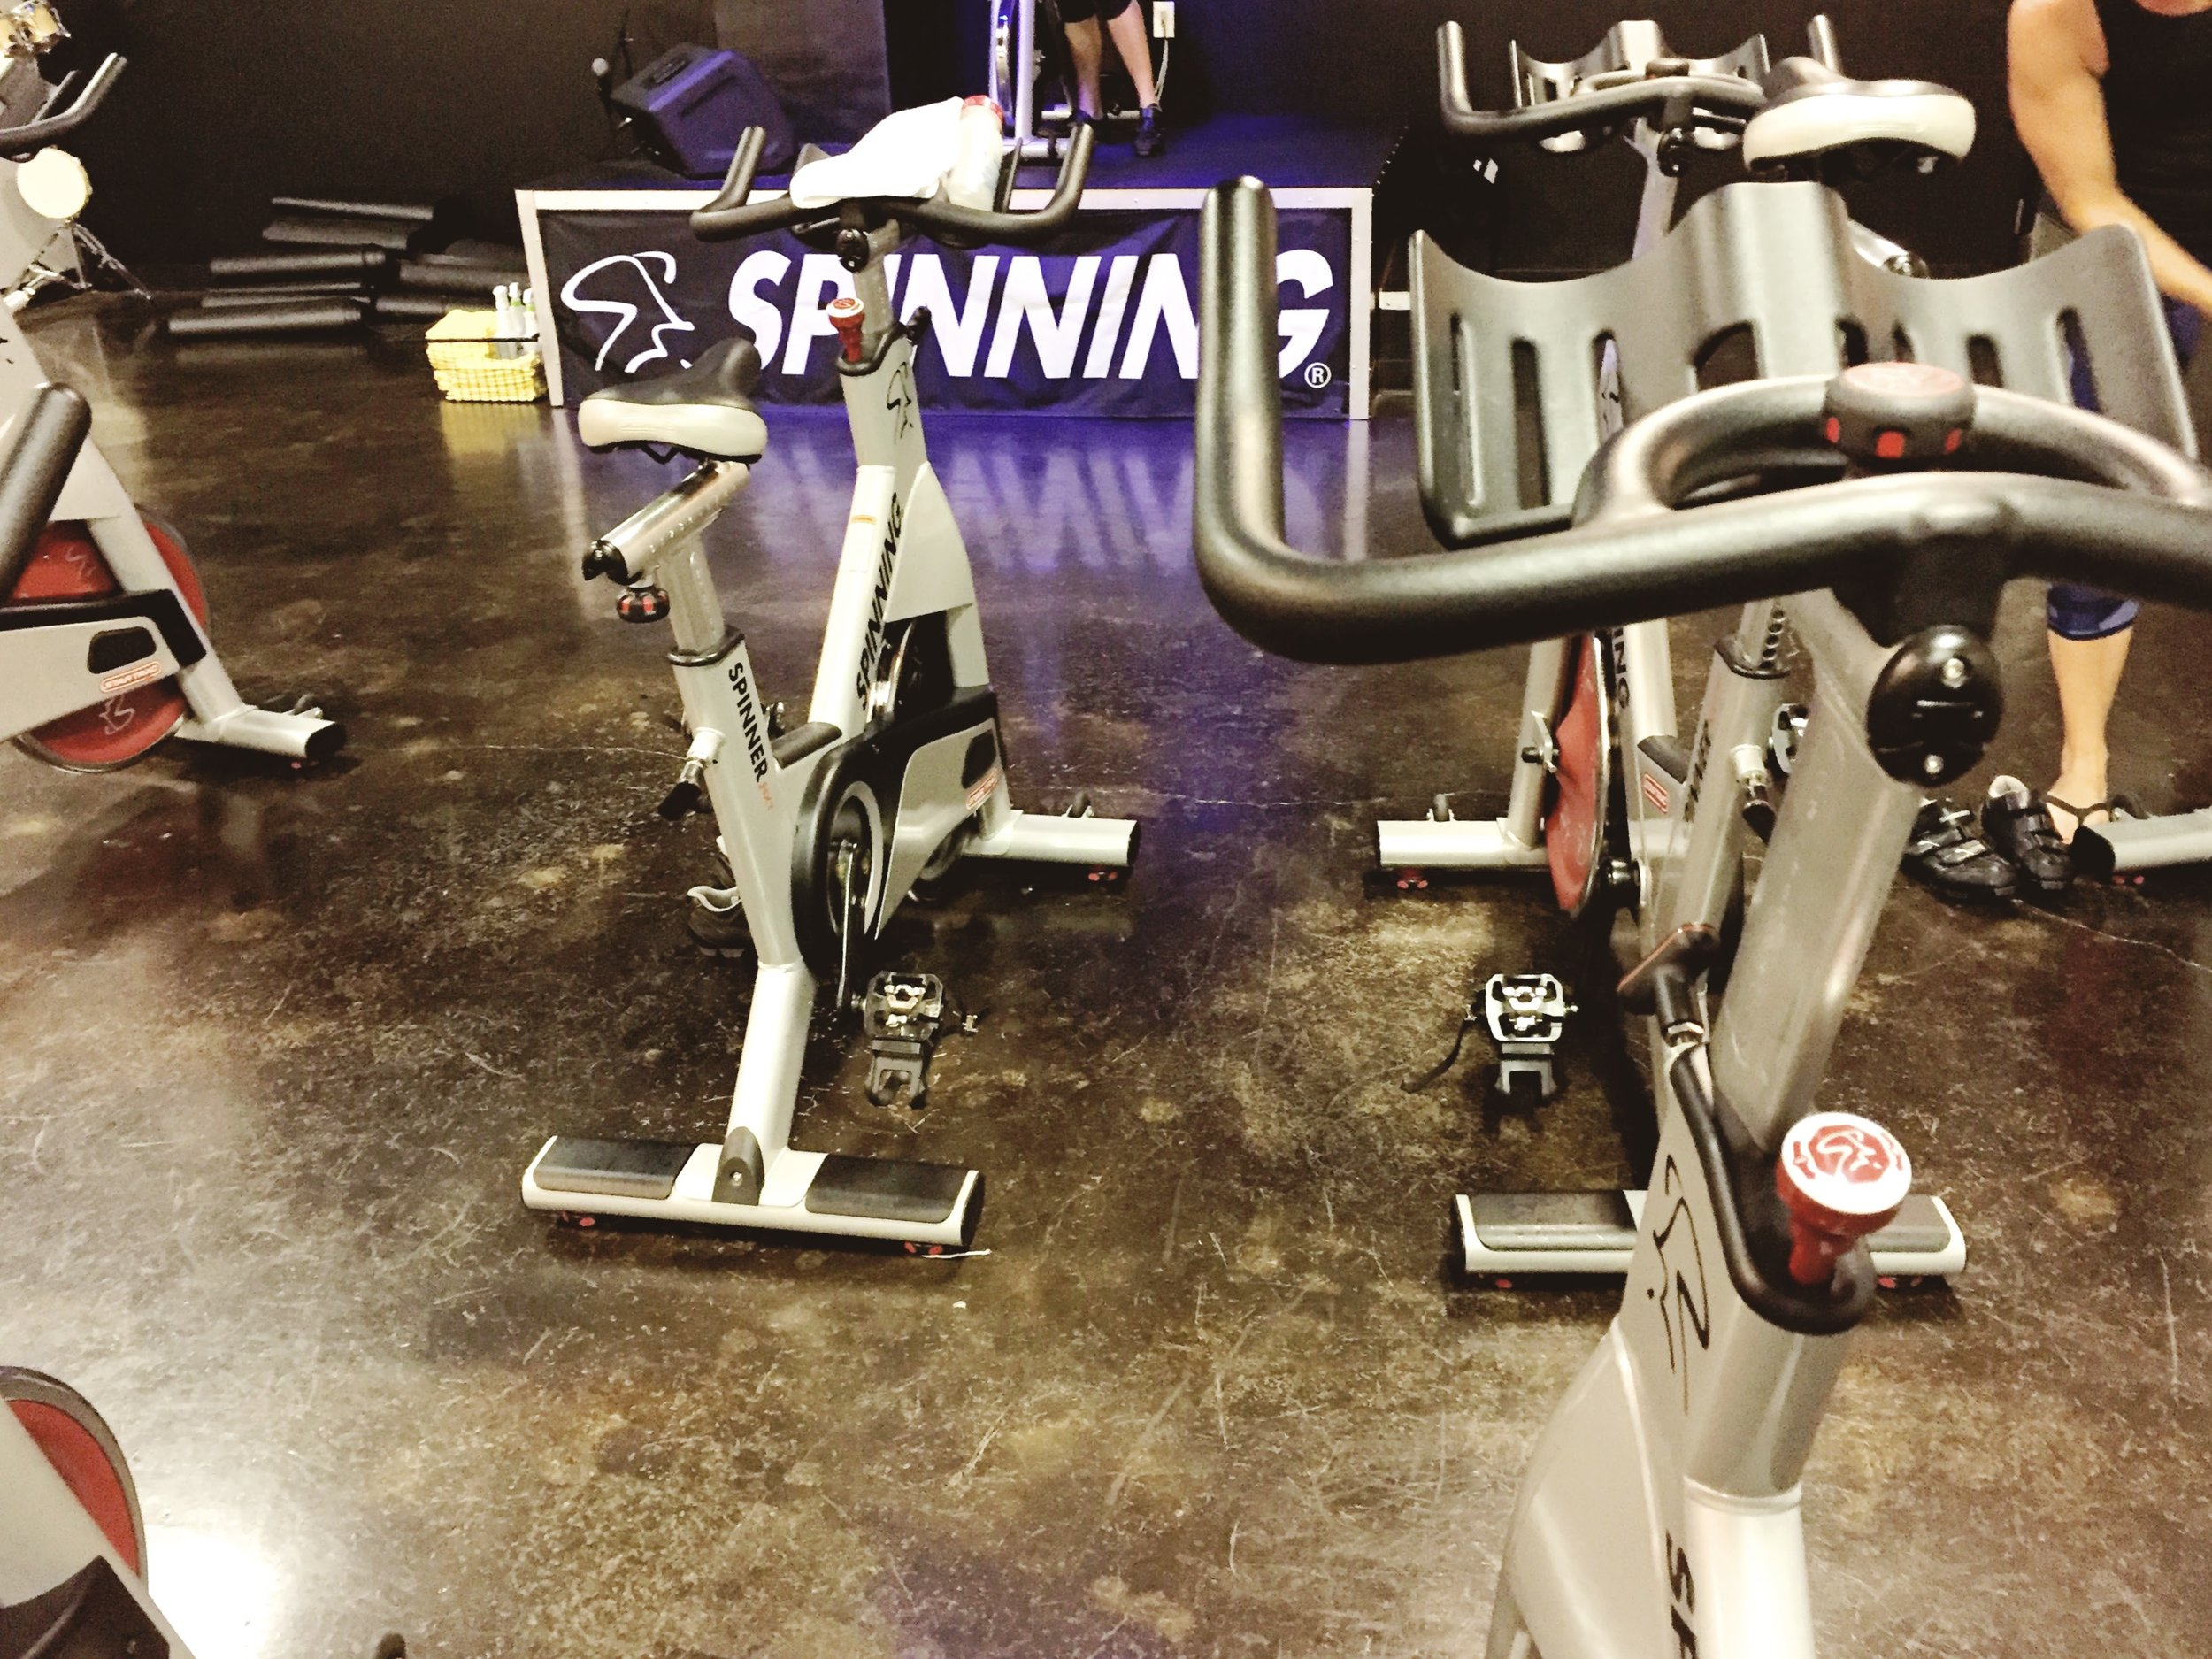 Hello, pretty cool spinning studio